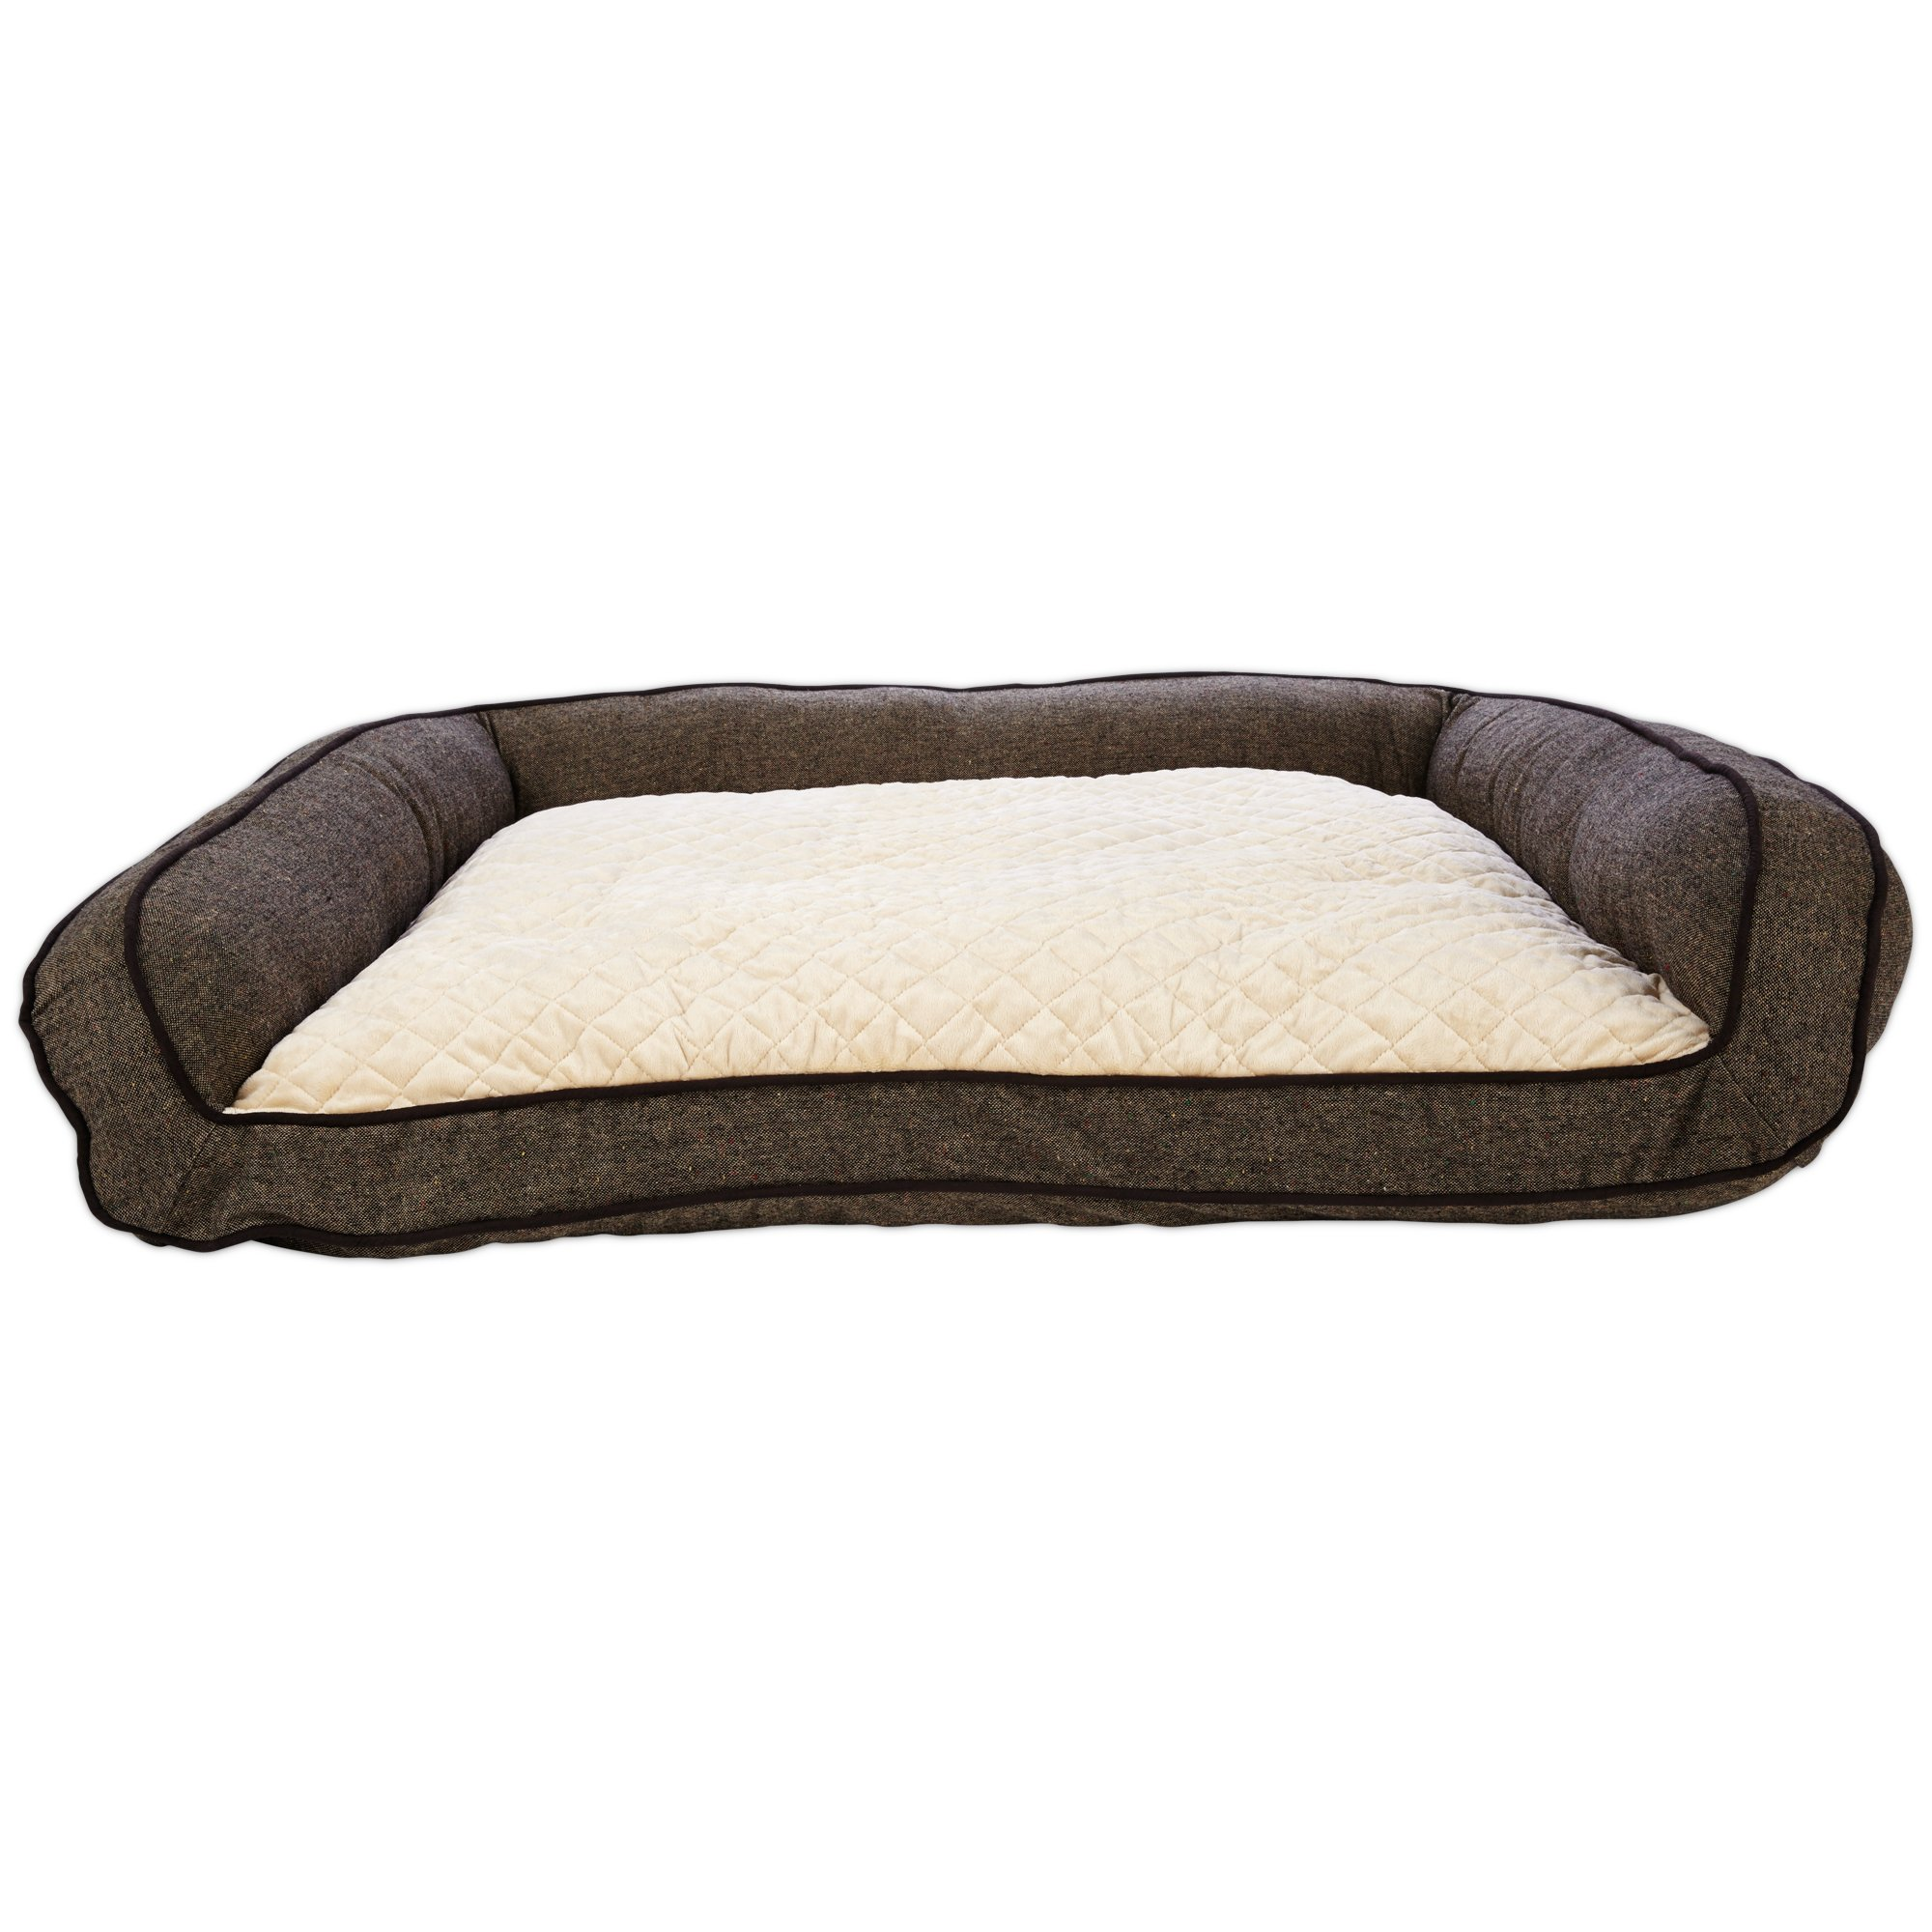 Dog Bed Couch Green Peace Couch Dog Beds Orvis  : 2533935 center 1 from franklinpennsylvania.us size 2000 x 2000 jpeg 335kB